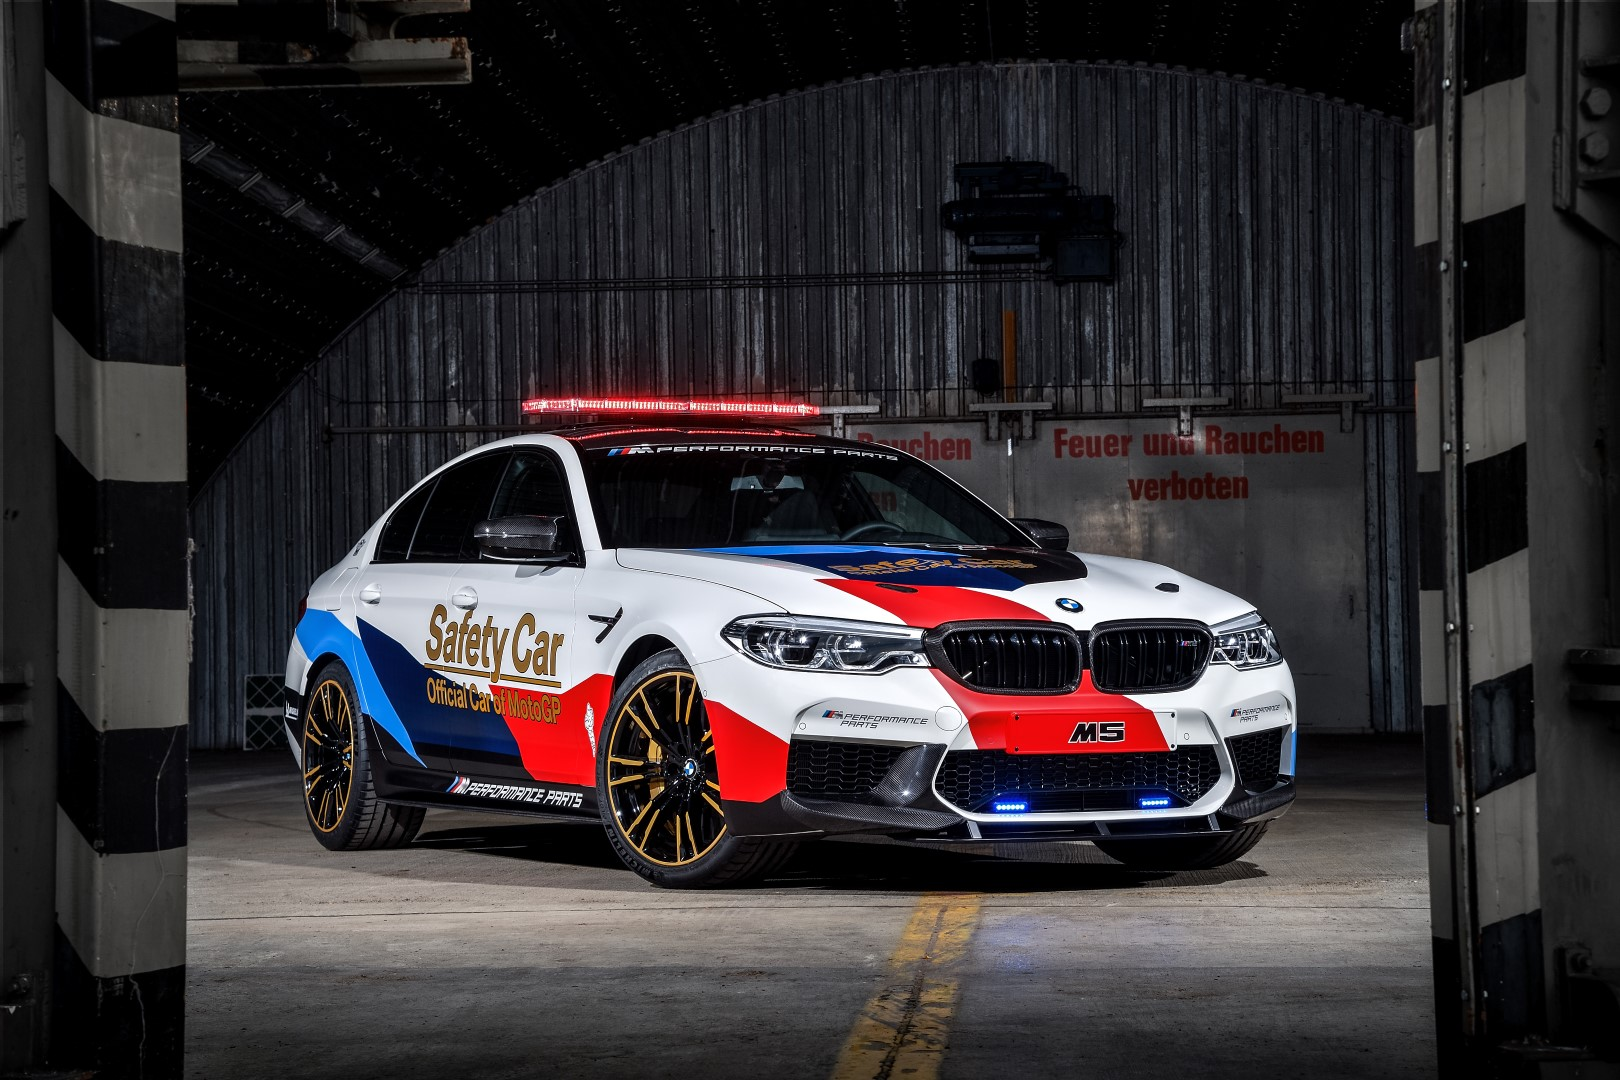 Bmw Show Off New M5 With M Performance Parts As Motogp